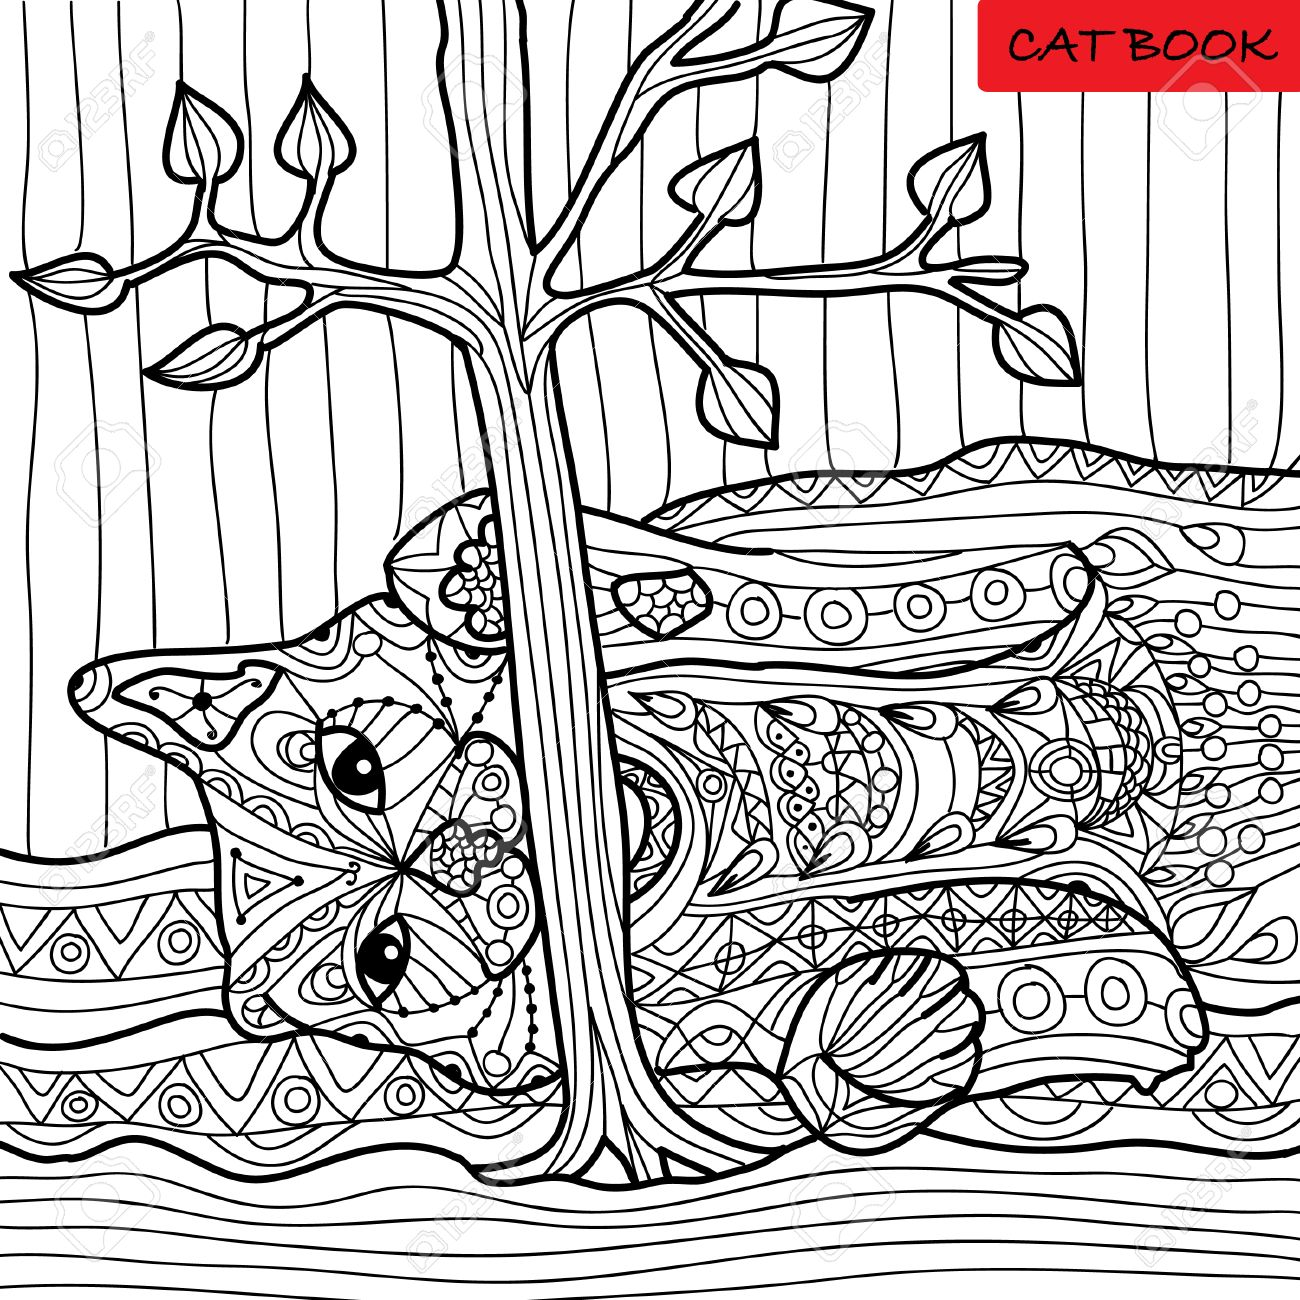 Naughty Cat - Coloring Book For Adults, Zentangle Patterns, Hand ...